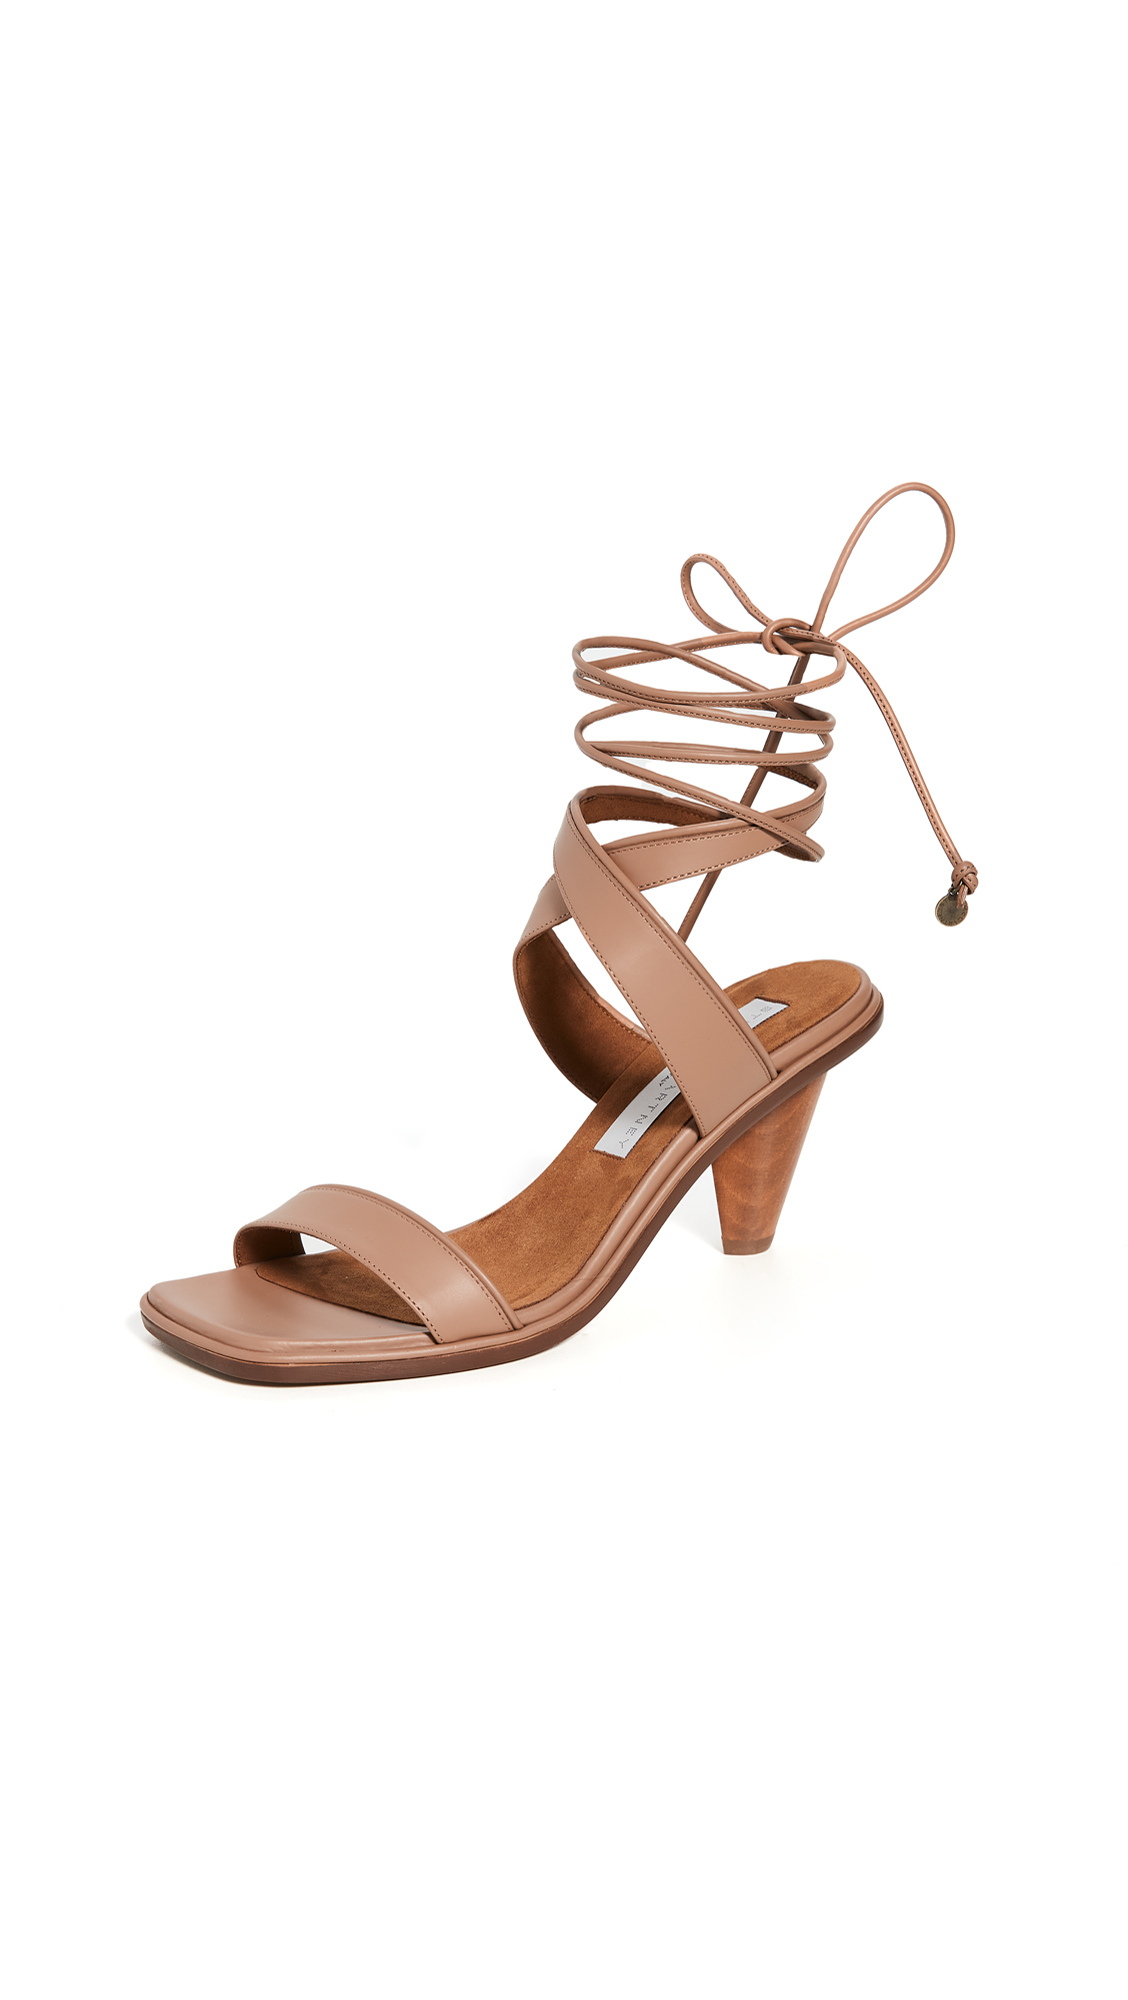 Buy Stella McCartney Rhea Sandals online, shop Stella McCartney